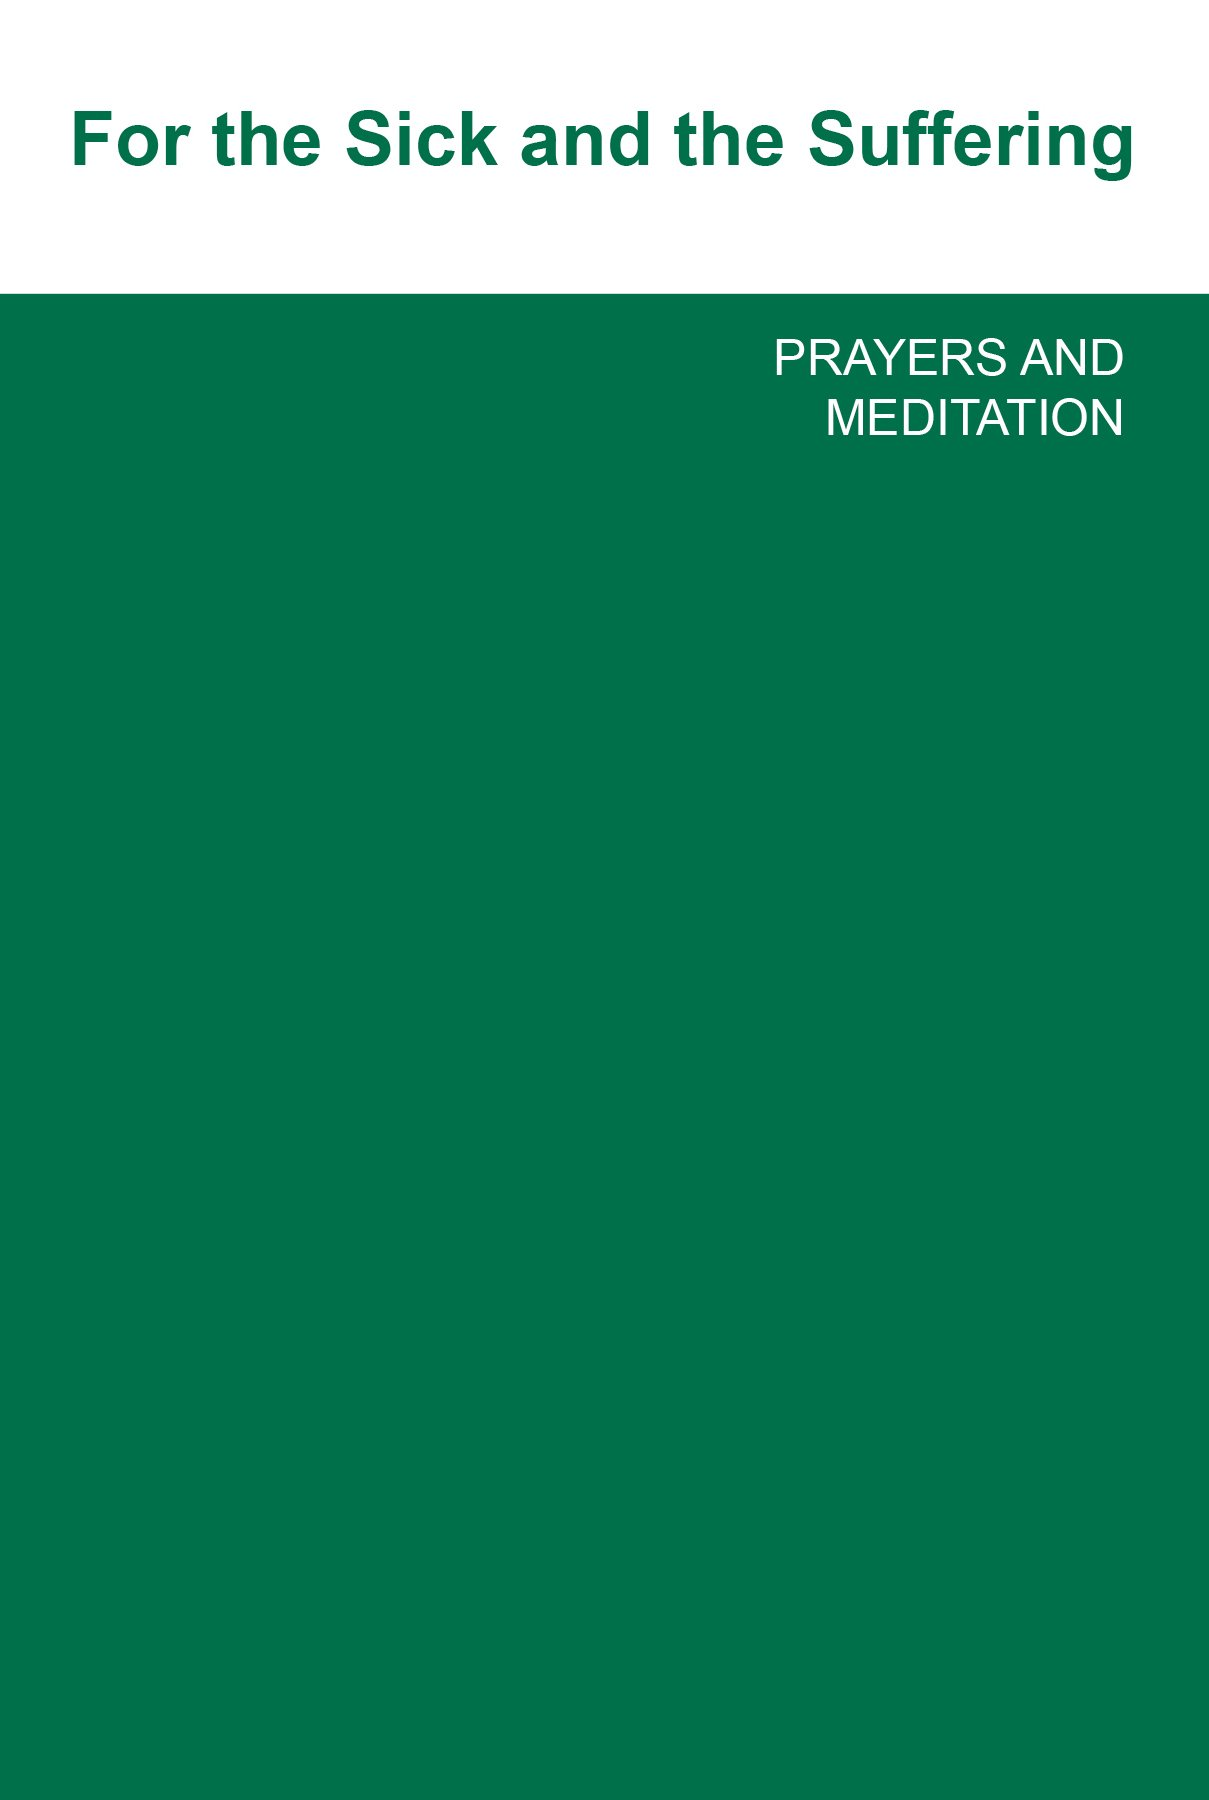 Download For the Sick and the Suffering Prayers and Meditation PDF